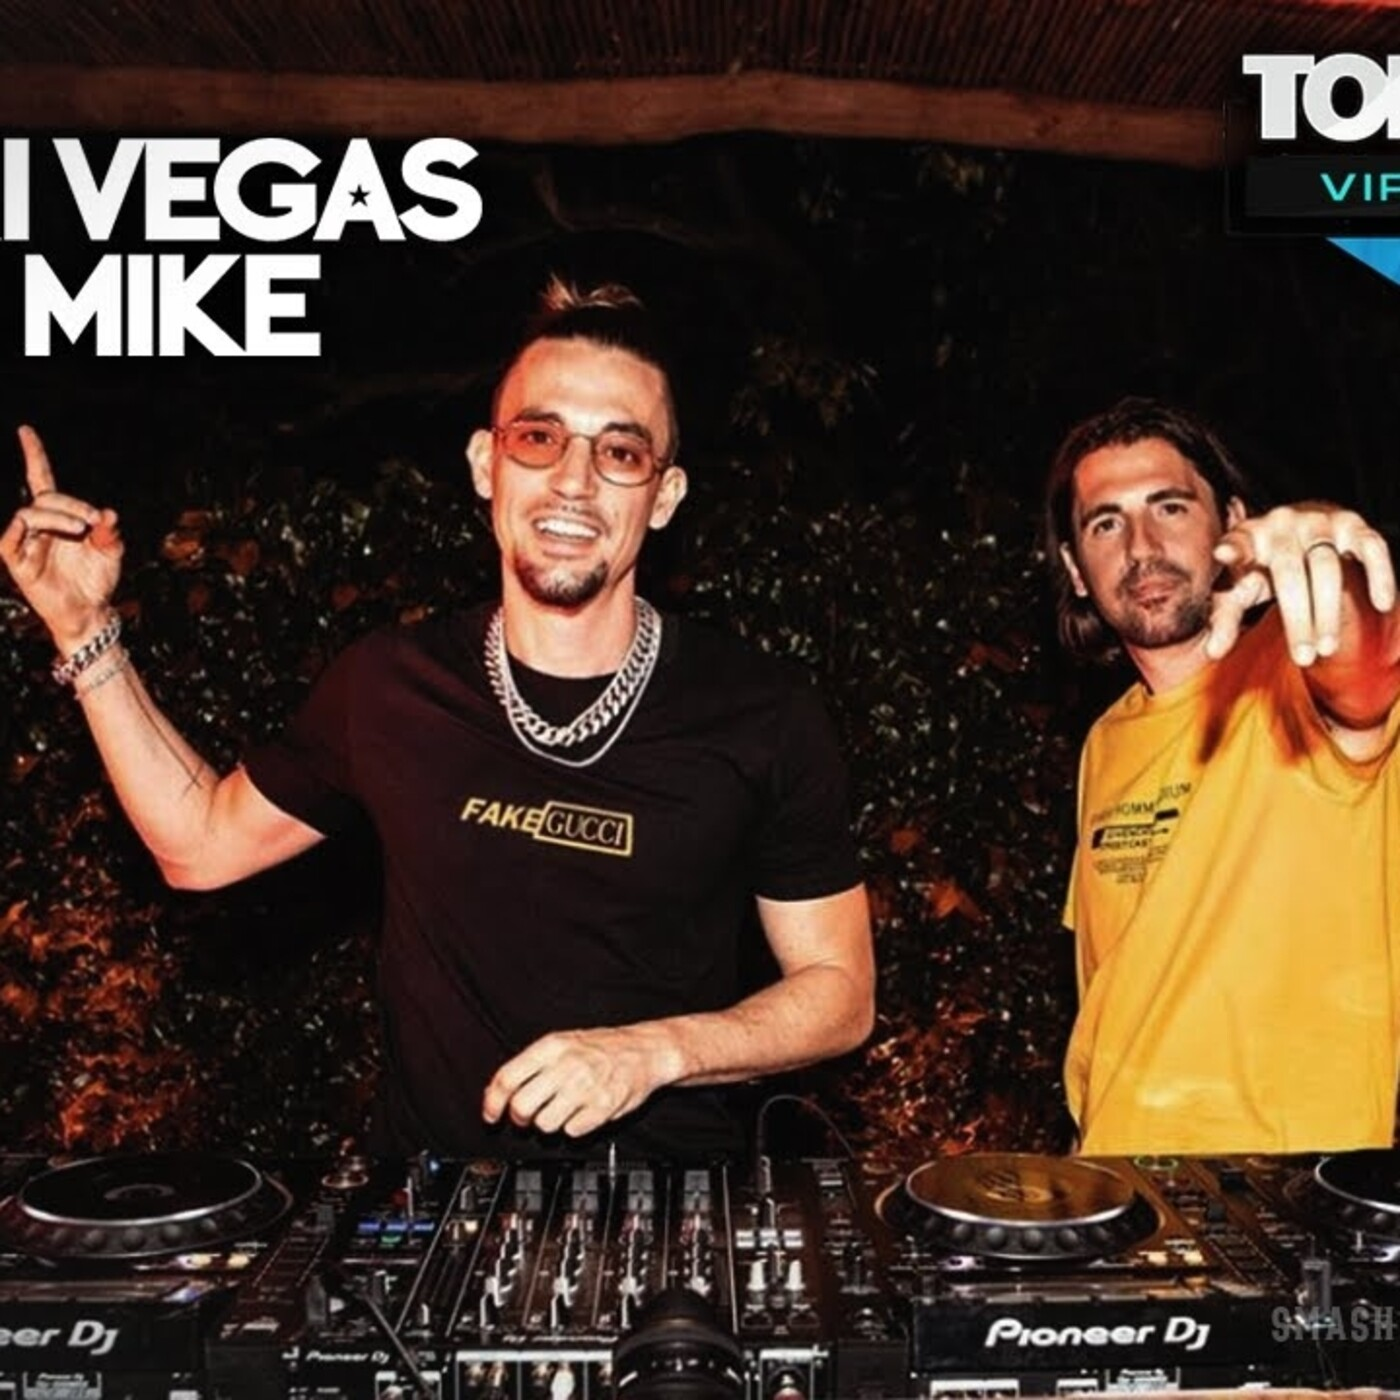 dimtri-vegas-&-like-mike-live-from-the-top-100-djs-virtual-festival